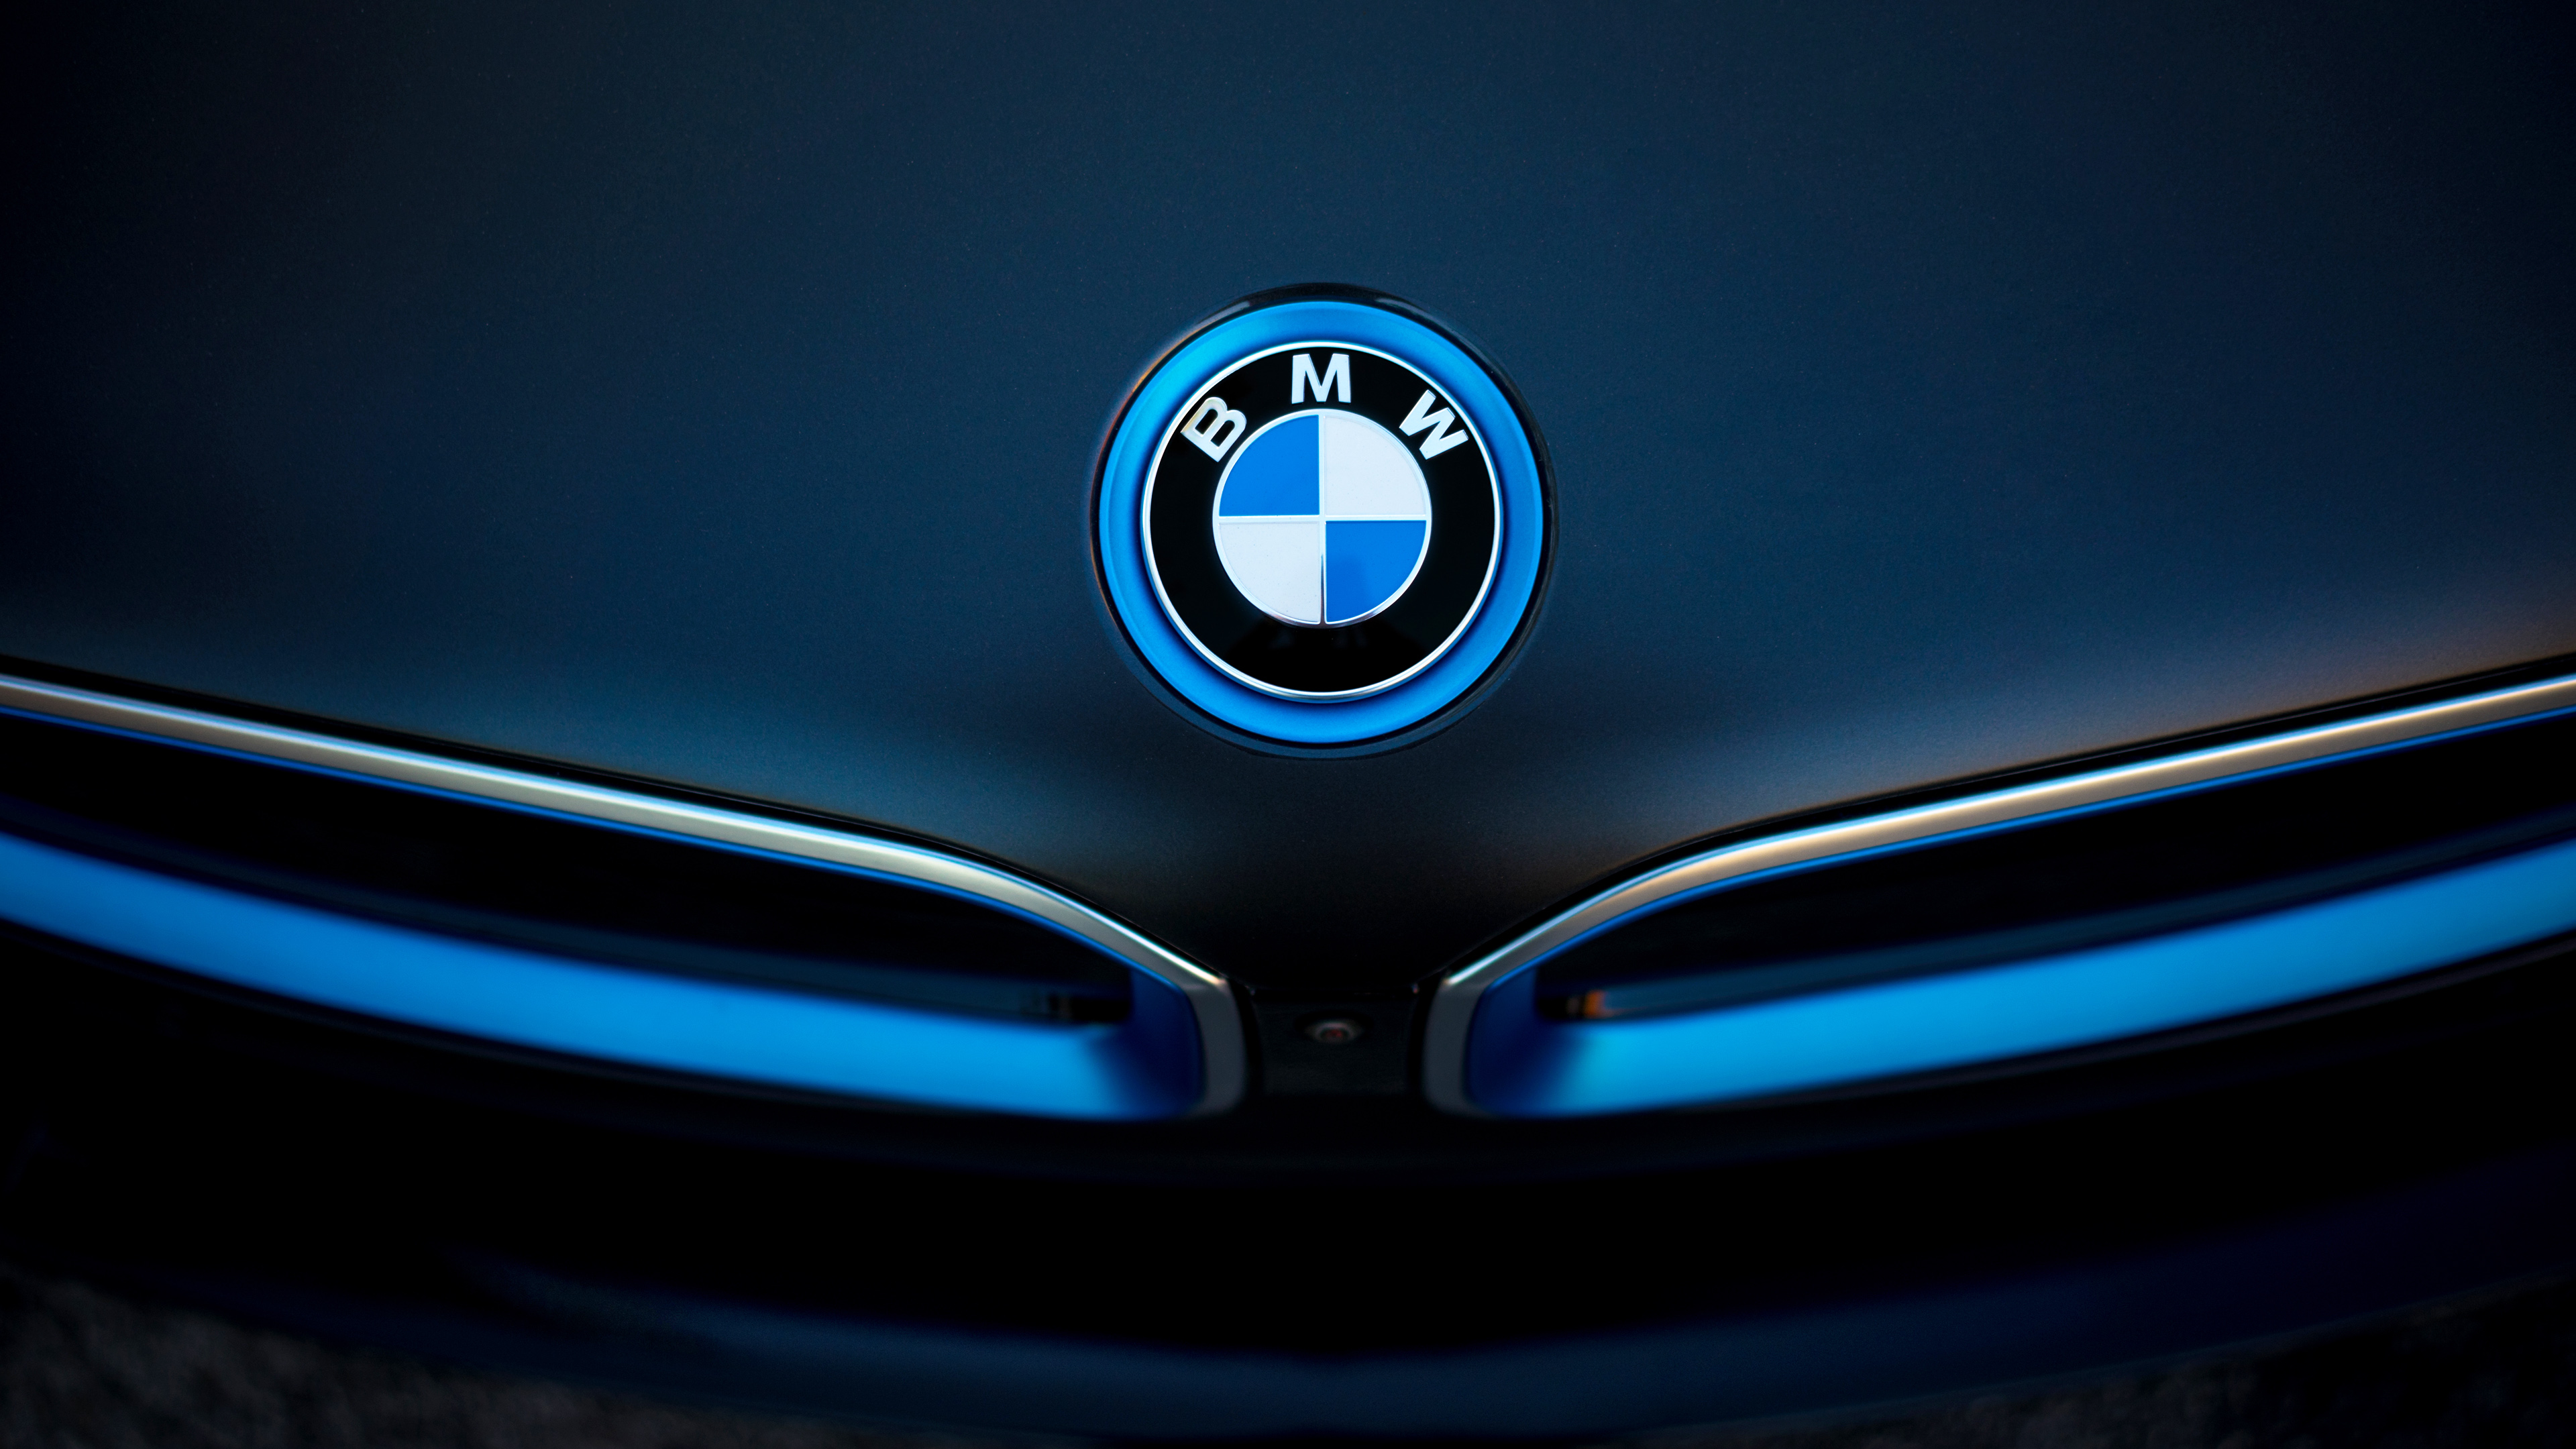 bmw logo wallpaper : find best latest bmw logo wallpaper in hd for